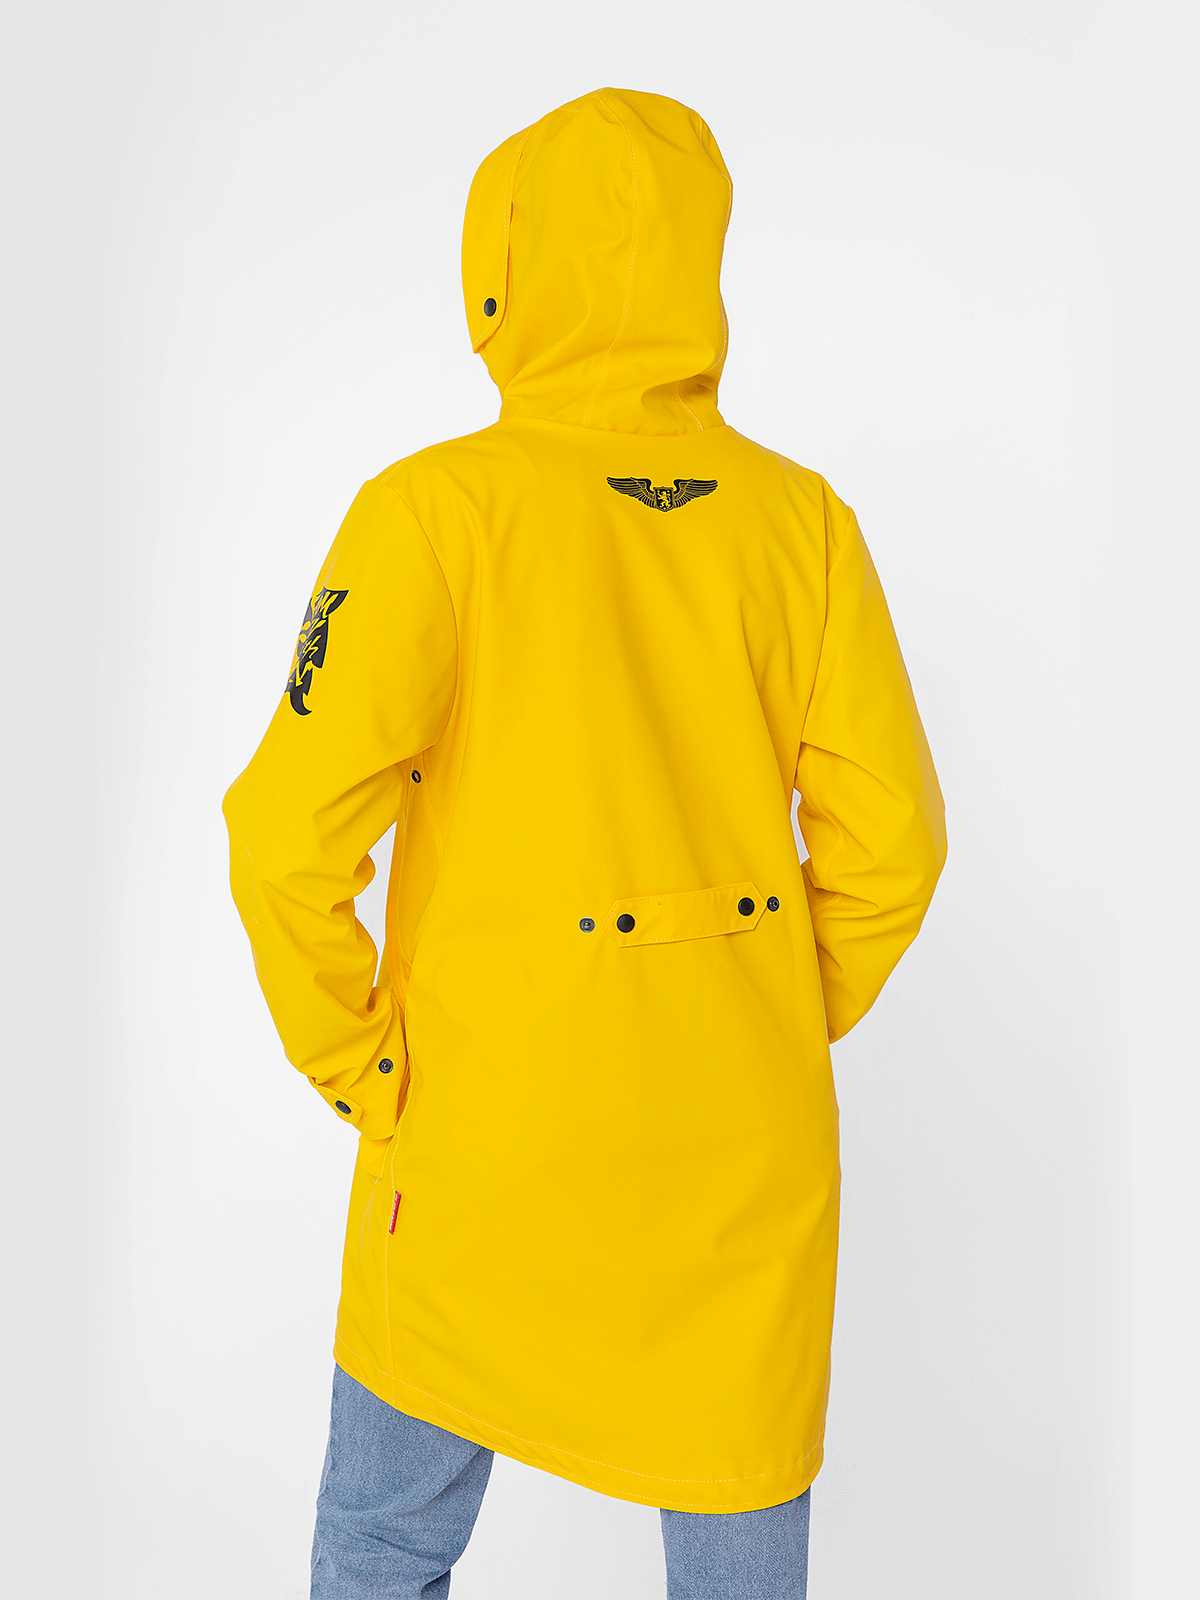 Women's Raincoat From Lviv With Rain. Color yellow.  Especially when you are in Lviv (you never know when the rain will start pouring down); – walks with pets; – short cycling ride; – having it in the car just in case; – cases when you decide to work on a fishing trawler in the middle of the ocean.